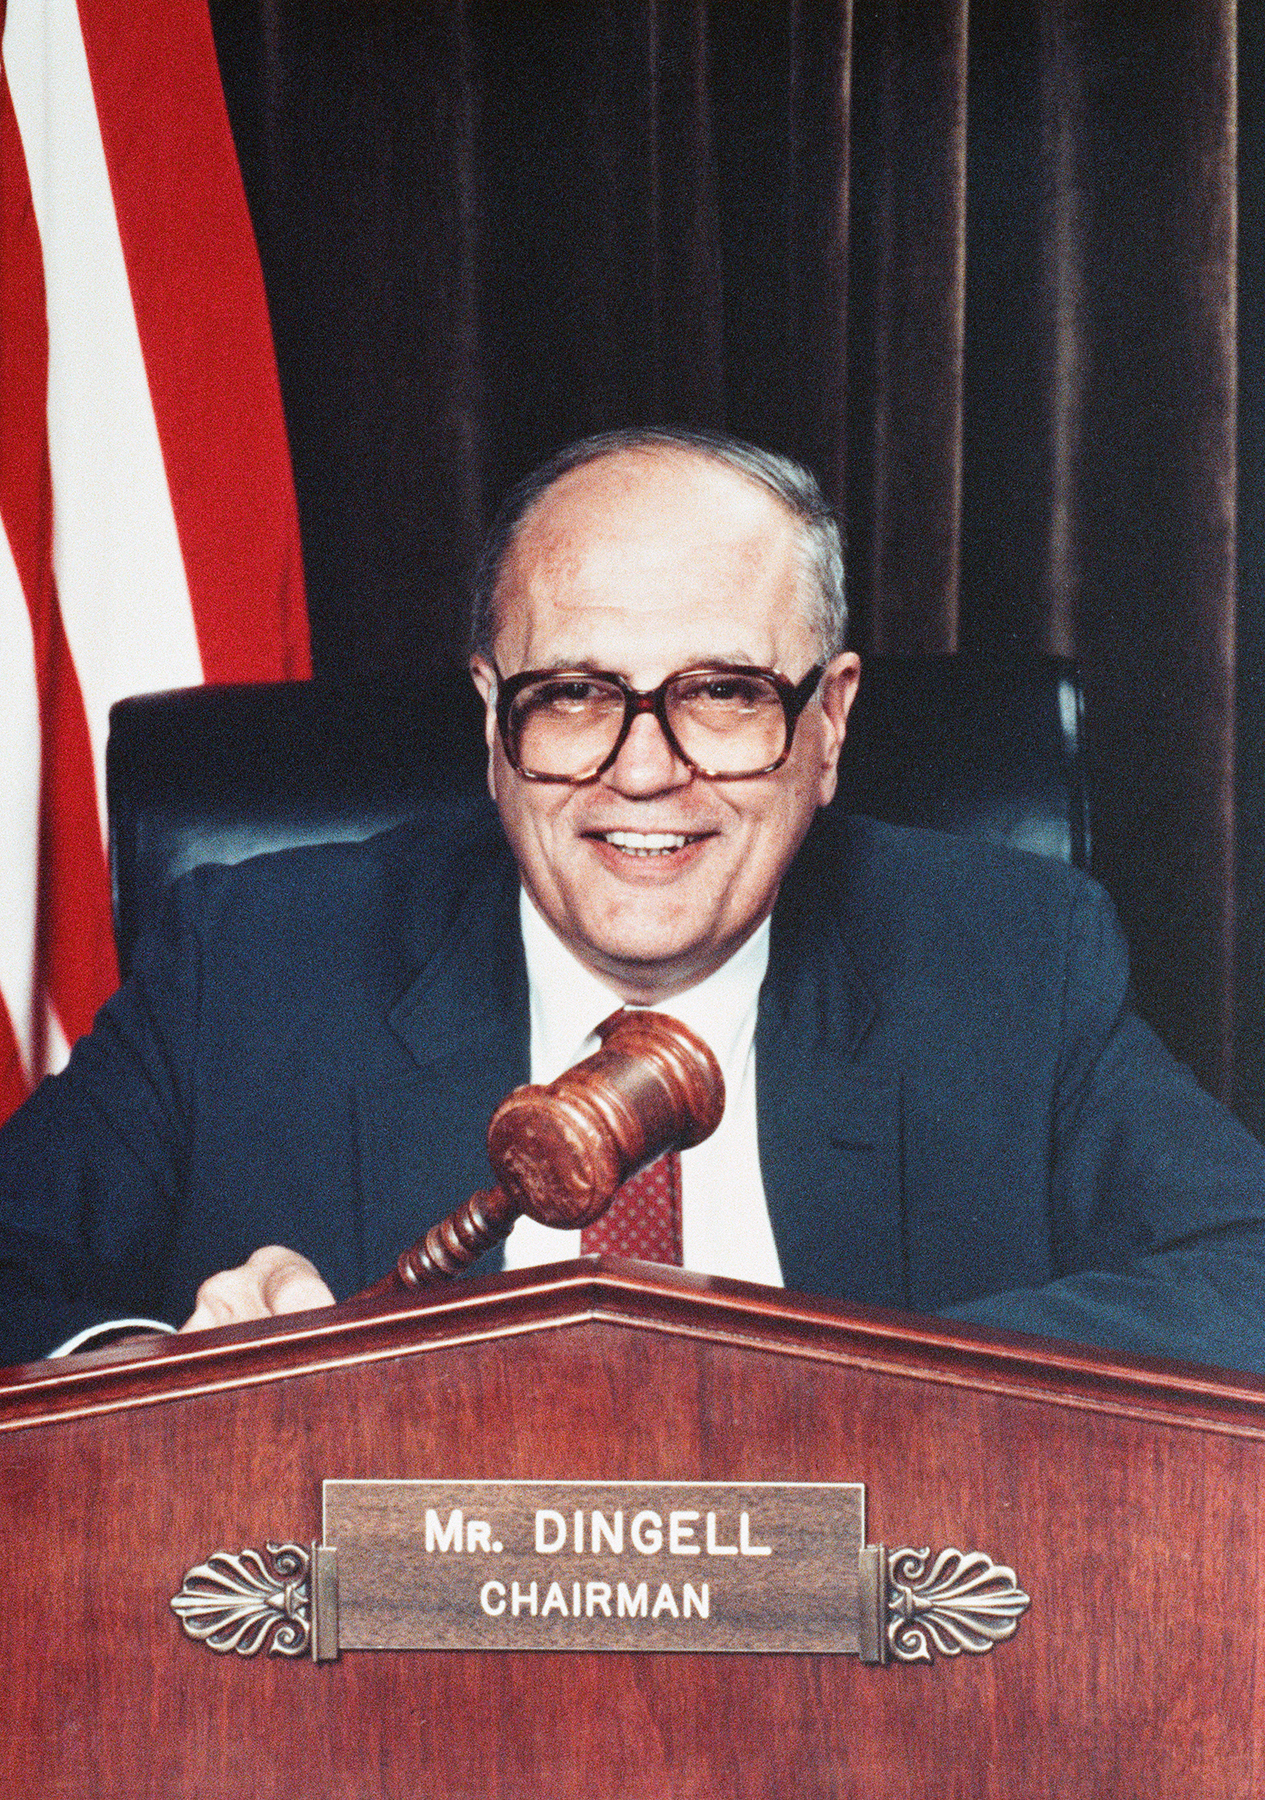 Dingell served as the chairman for the House Energy and Commerce Committee for 16 years.